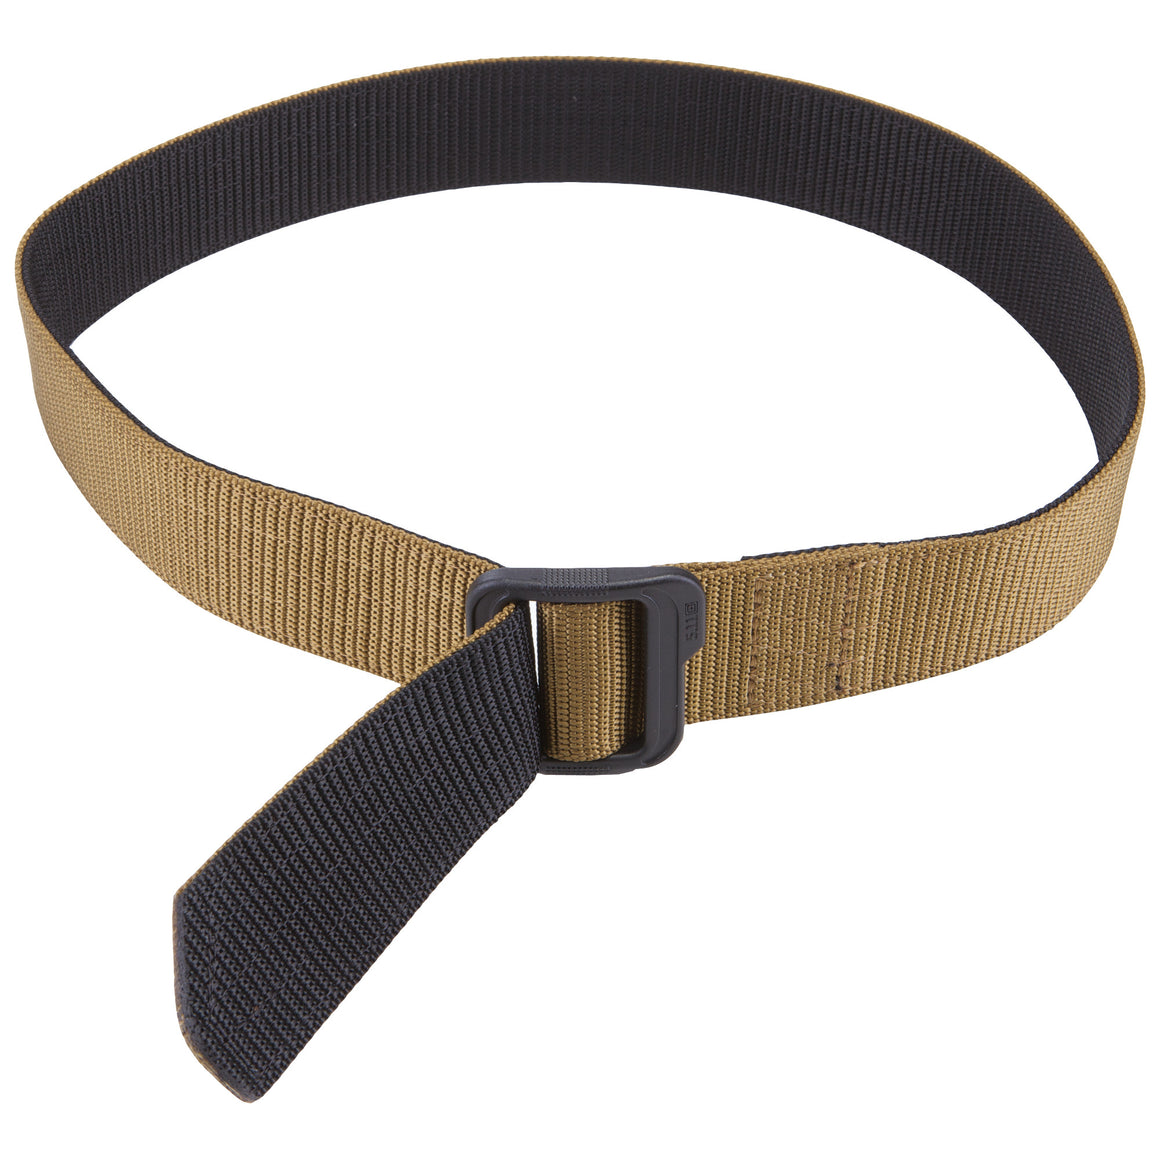 5.11 1.75 double duty operator belt or tie down strap